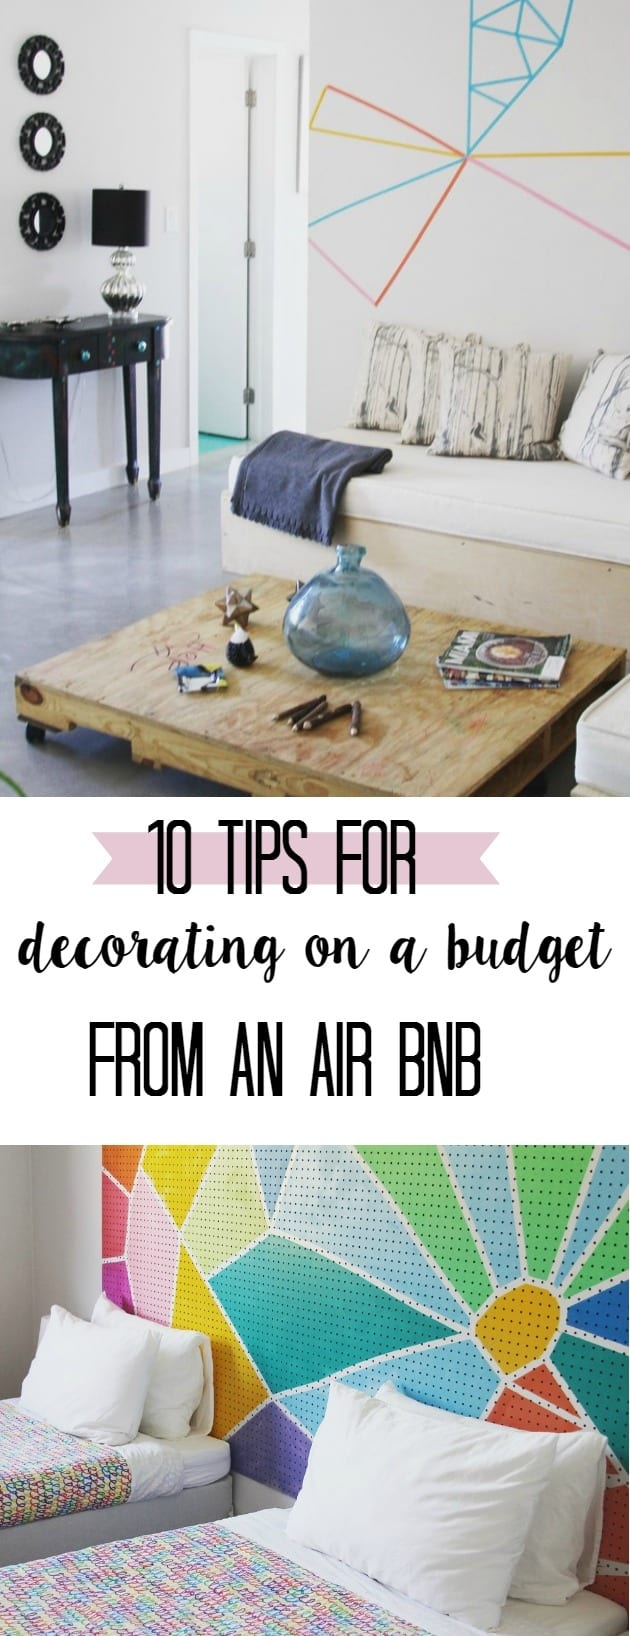 How to decorate on a budget- tips from an Air BNB. There are some fun DIY ideas- from bedroom decor to wall hangings so you can save money on your house